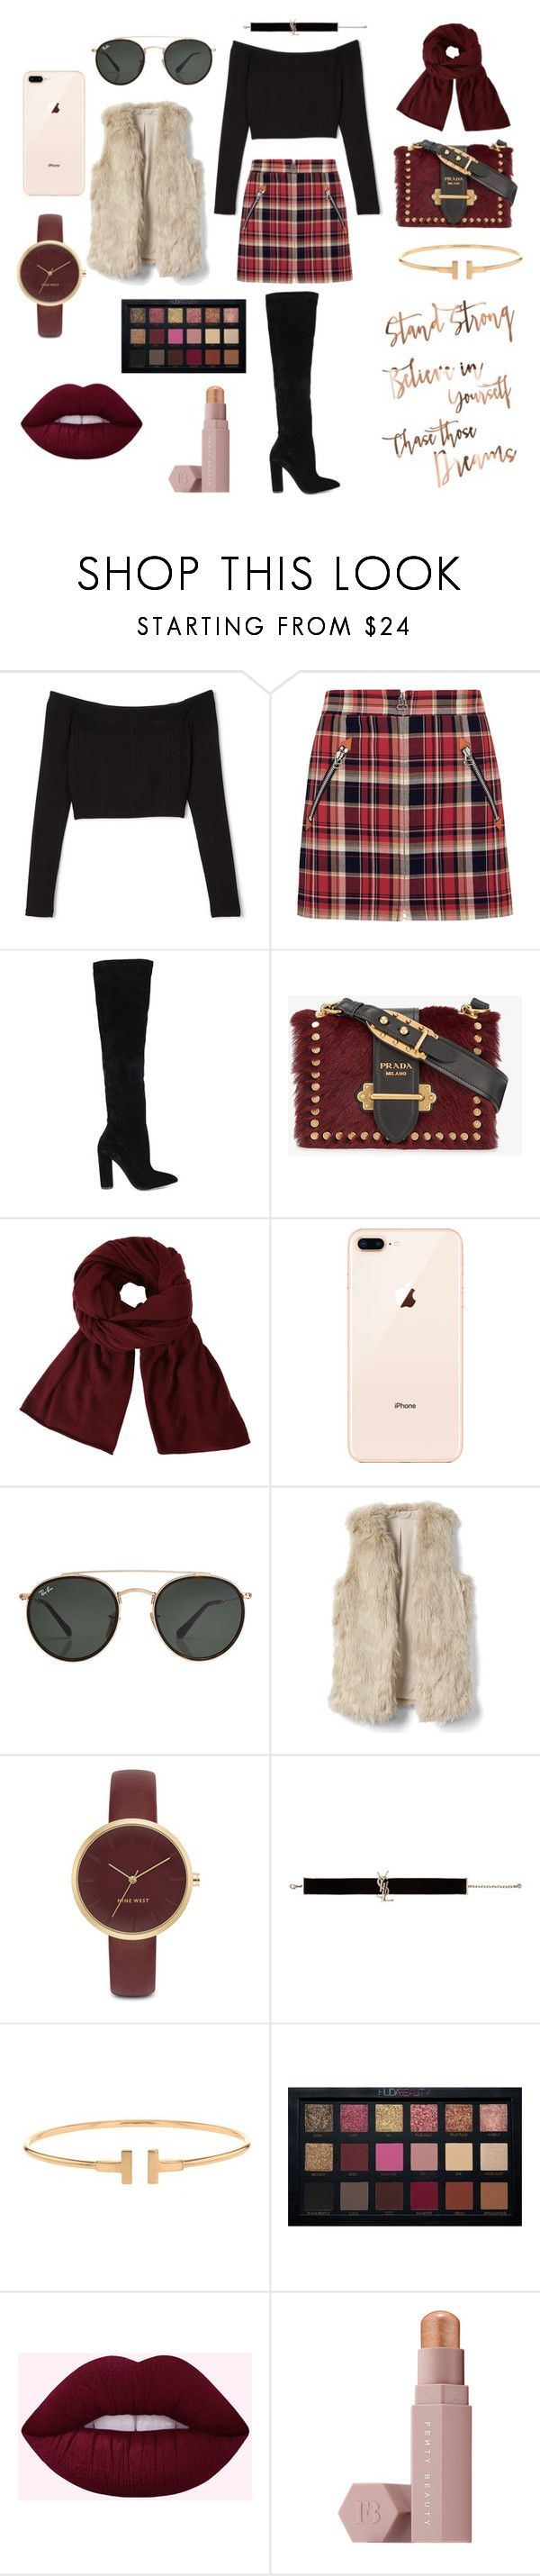 """GIRL BOSS"" by queenpaola on Polyvore featuring moda, rag & bone, ALDO, Prada, John Lewis, Ray-Ban, Nine West, Yves Saint Laurent, Huda Beauty e Puma"